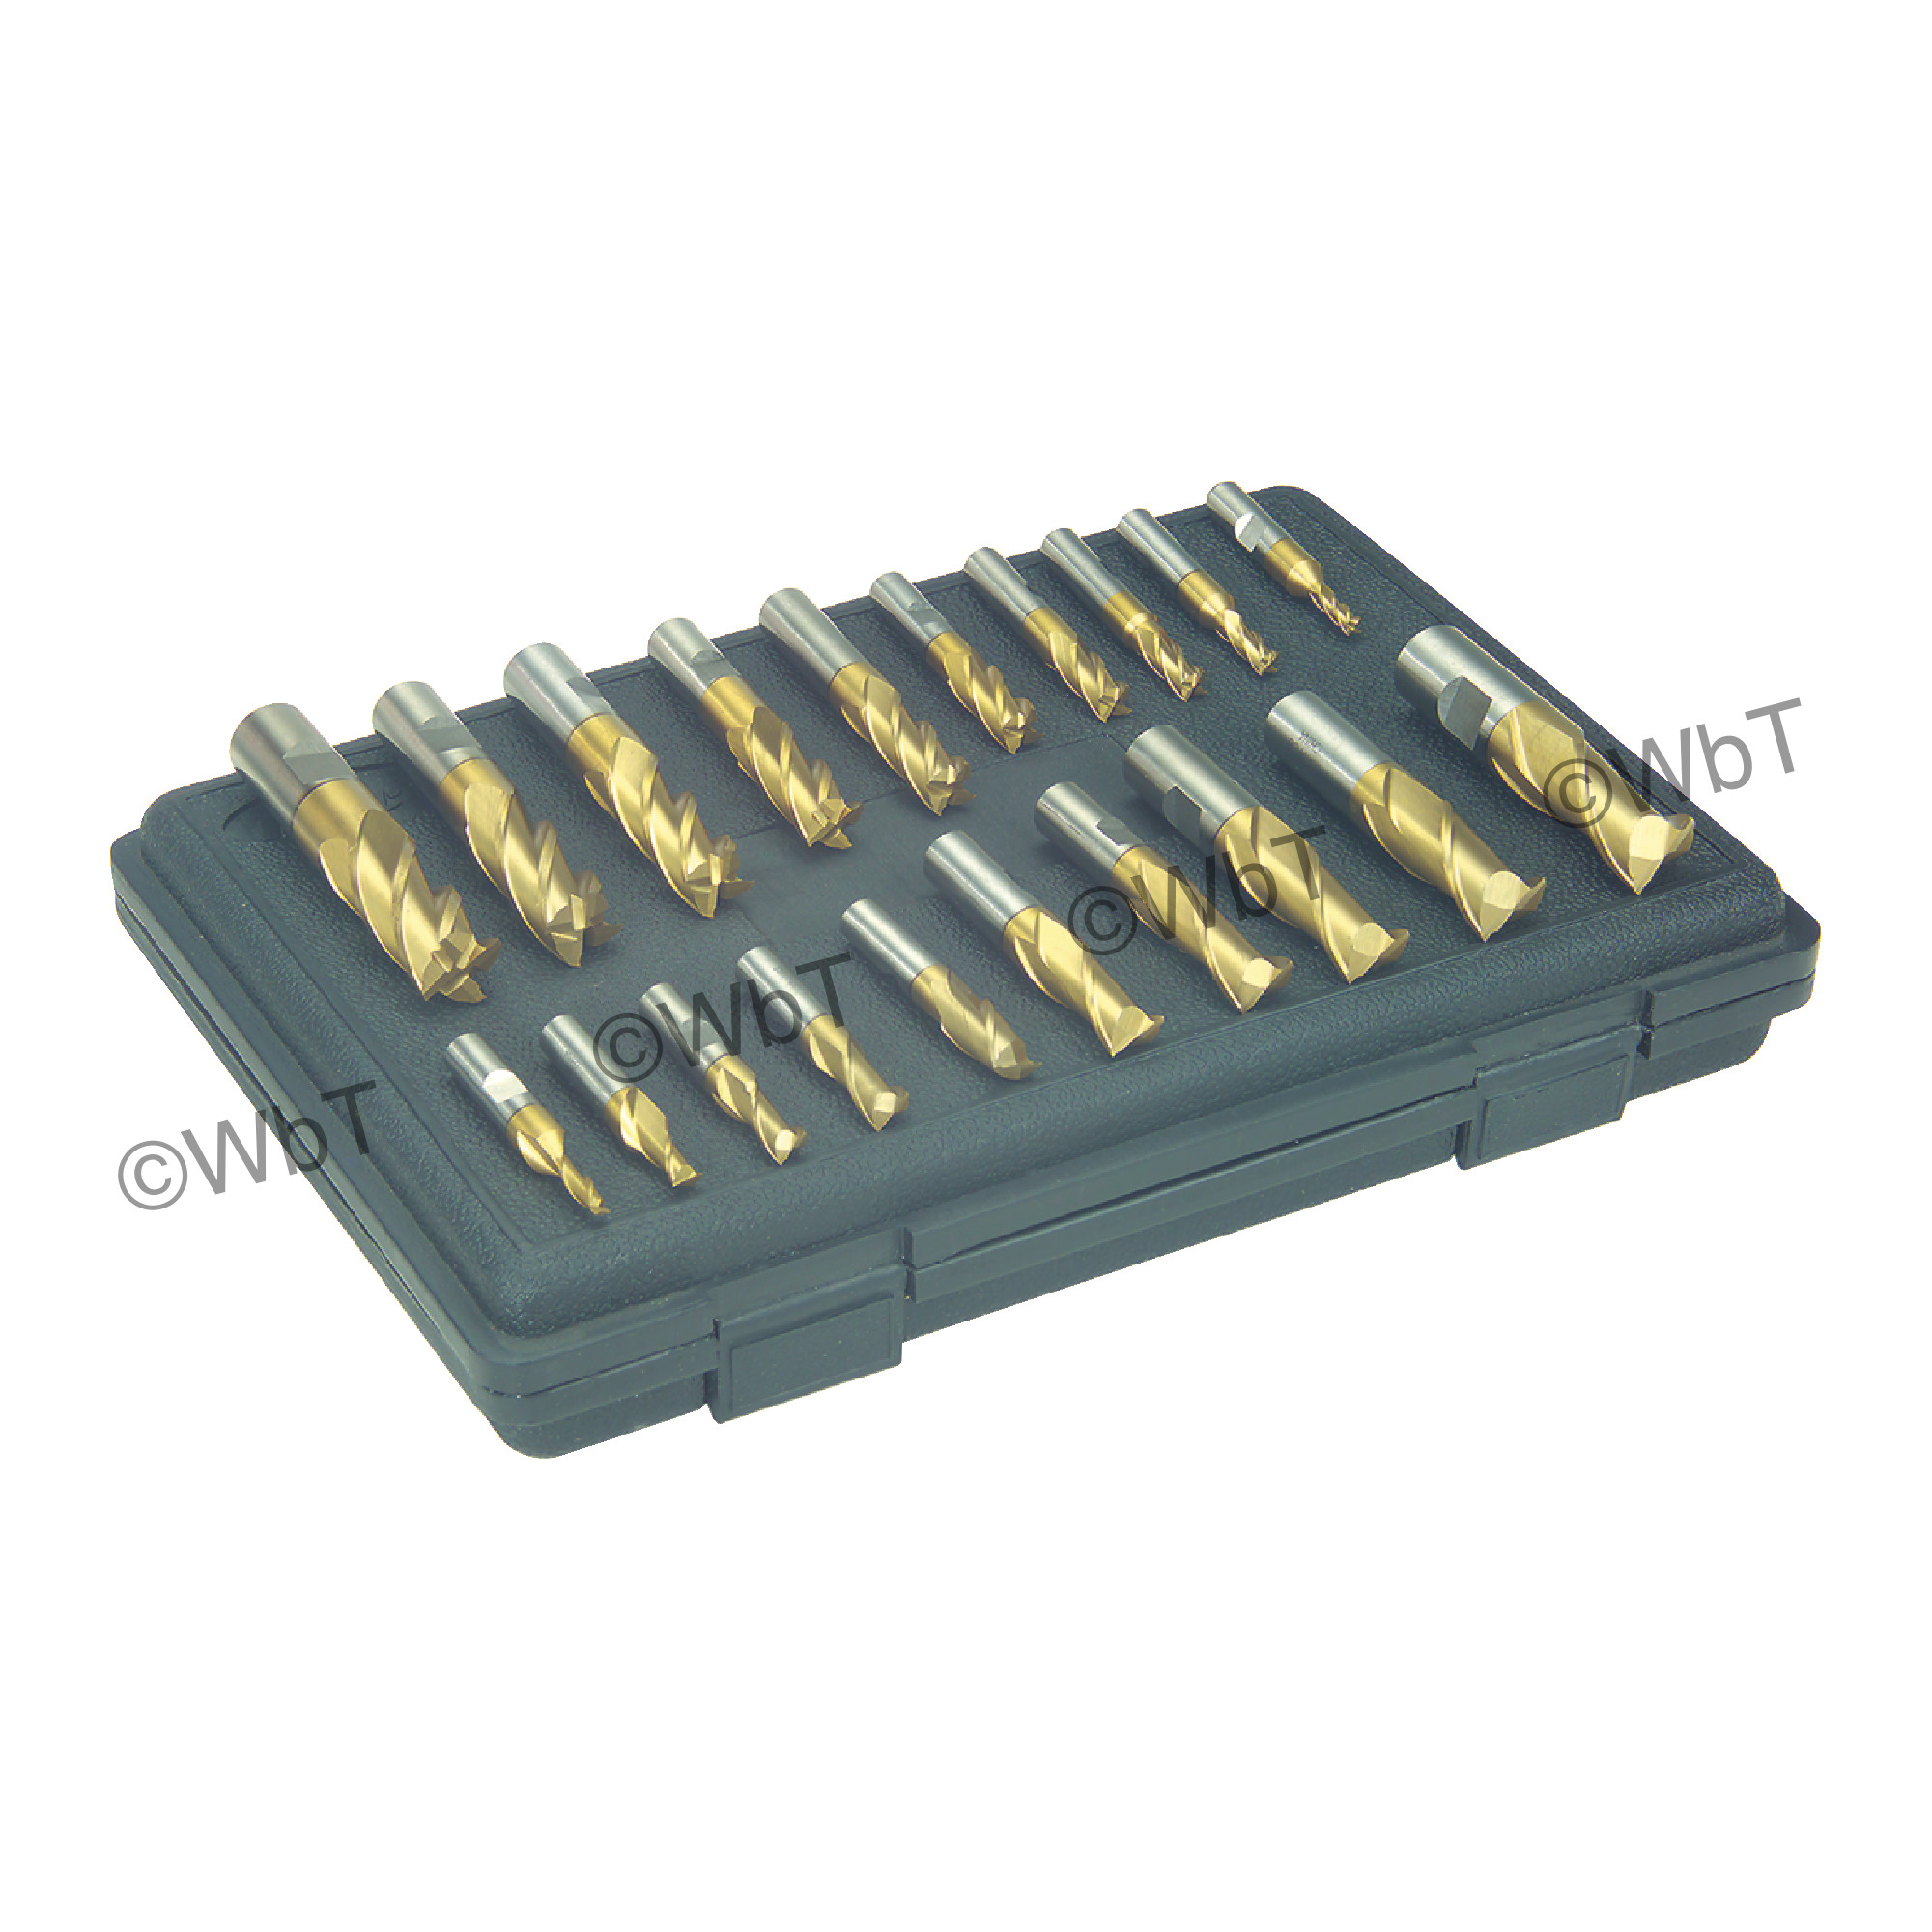 20 Piece High Speed Steel Metric TiN Coated Single End Mill Set